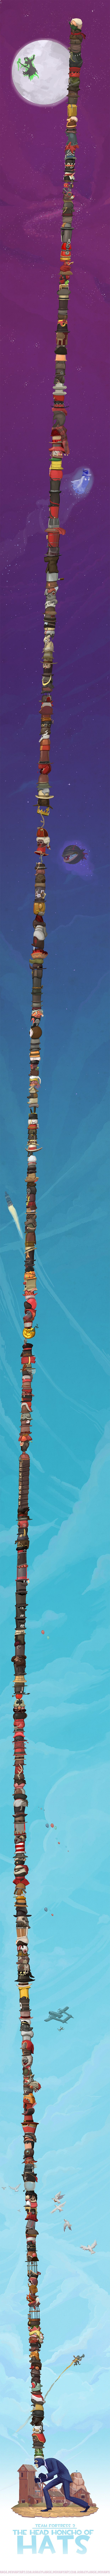 every hat in team fortress 2 by ashley lange